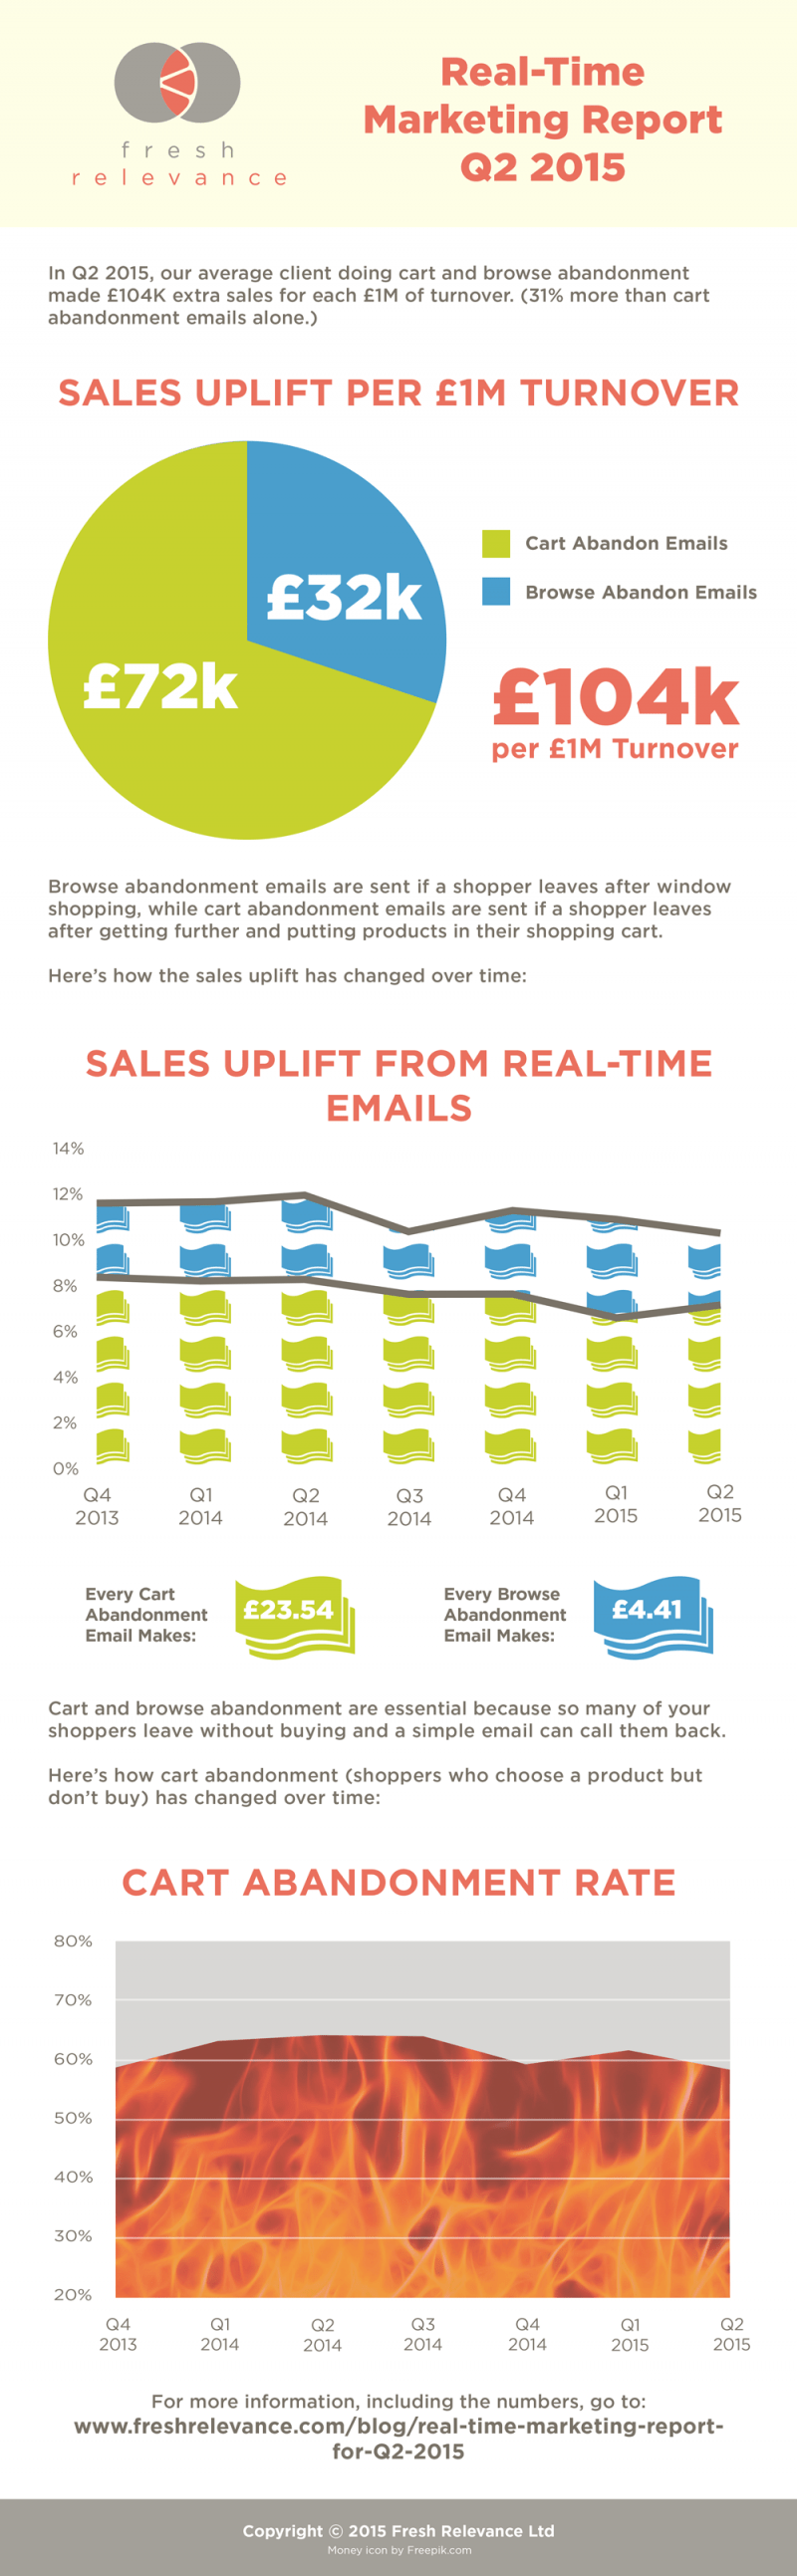 Real-time marketing report - Q2 2015